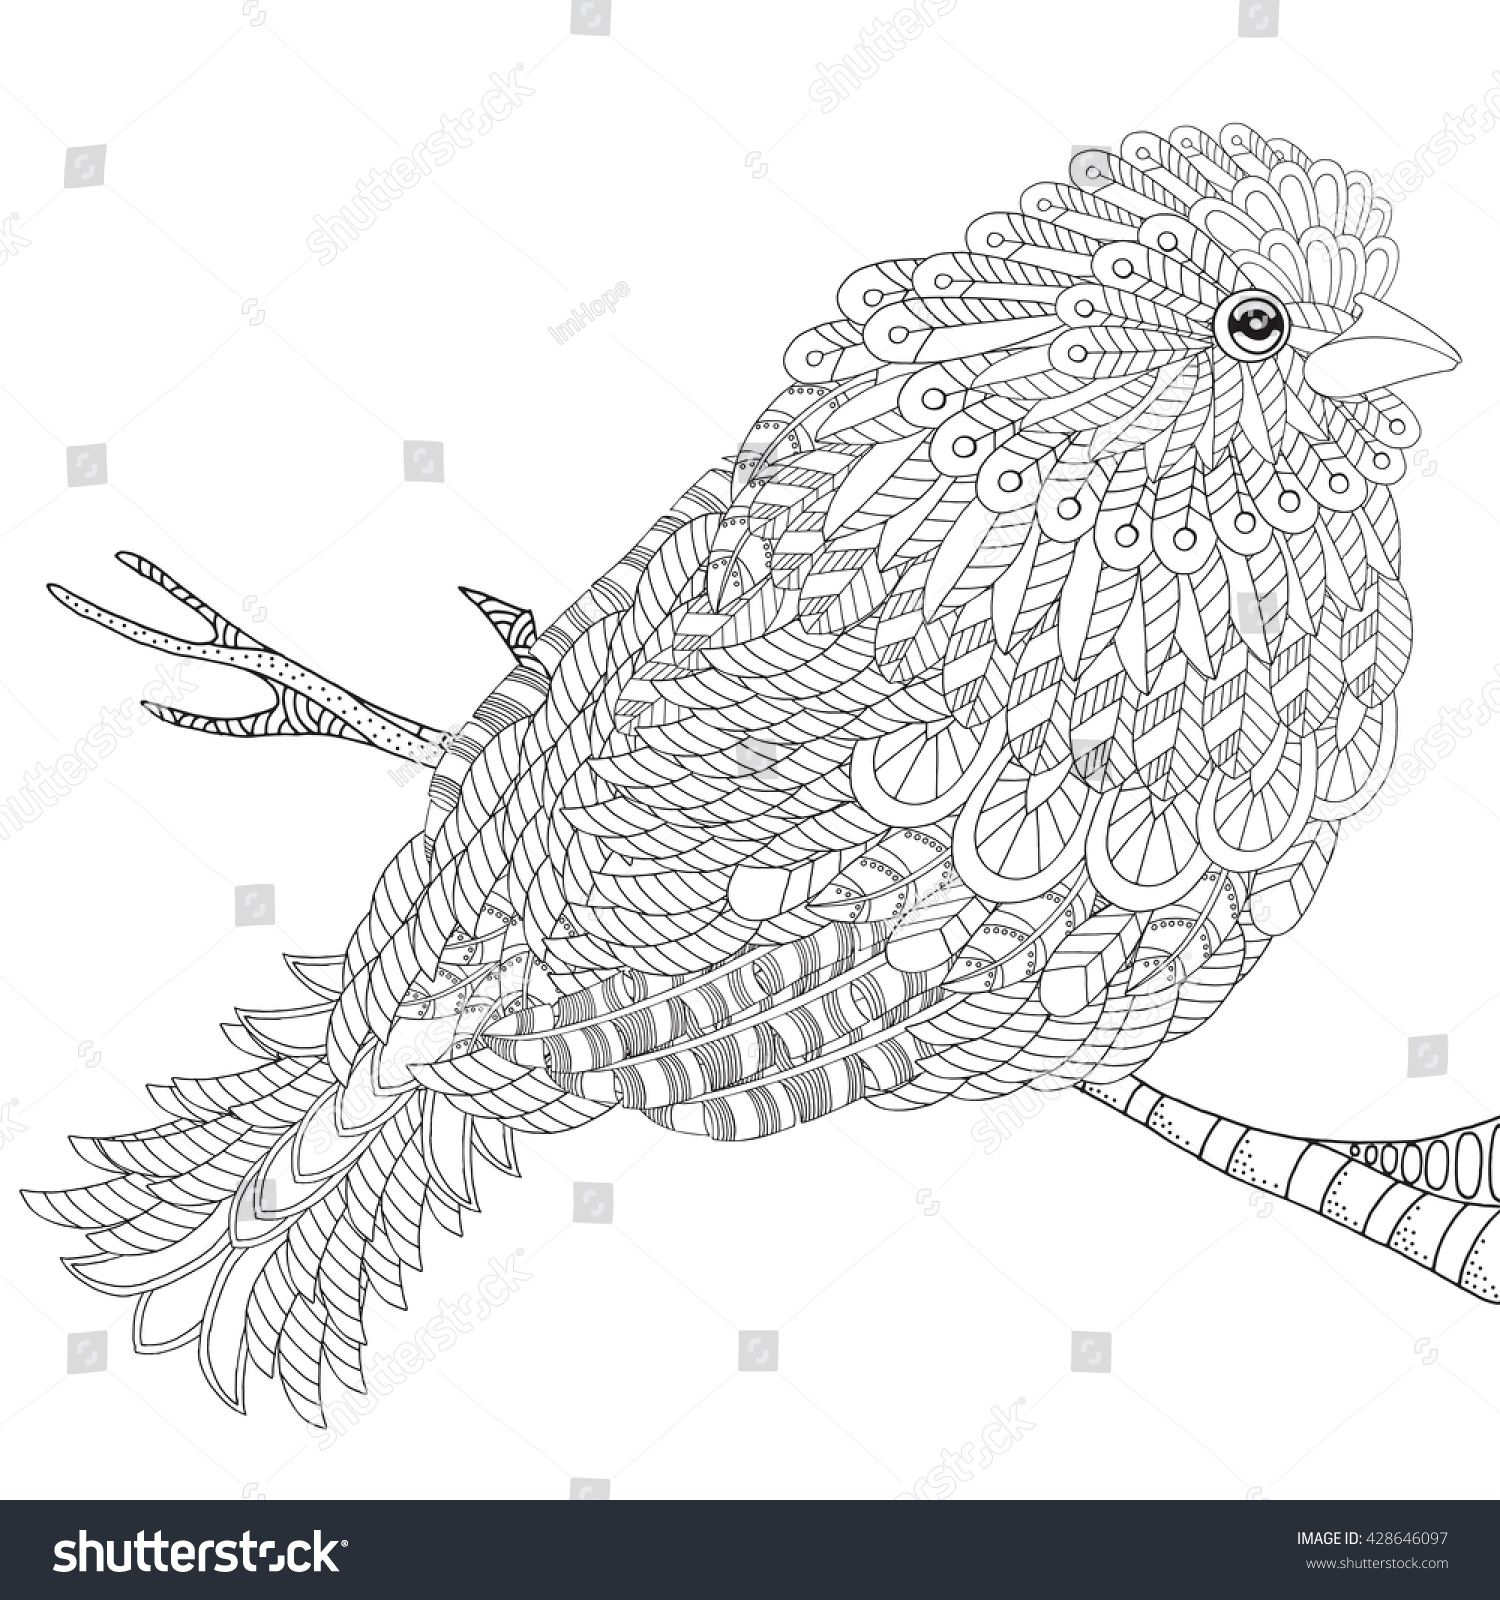 Fantastical Bird Coloring Book Amazing Bird With Feathers And